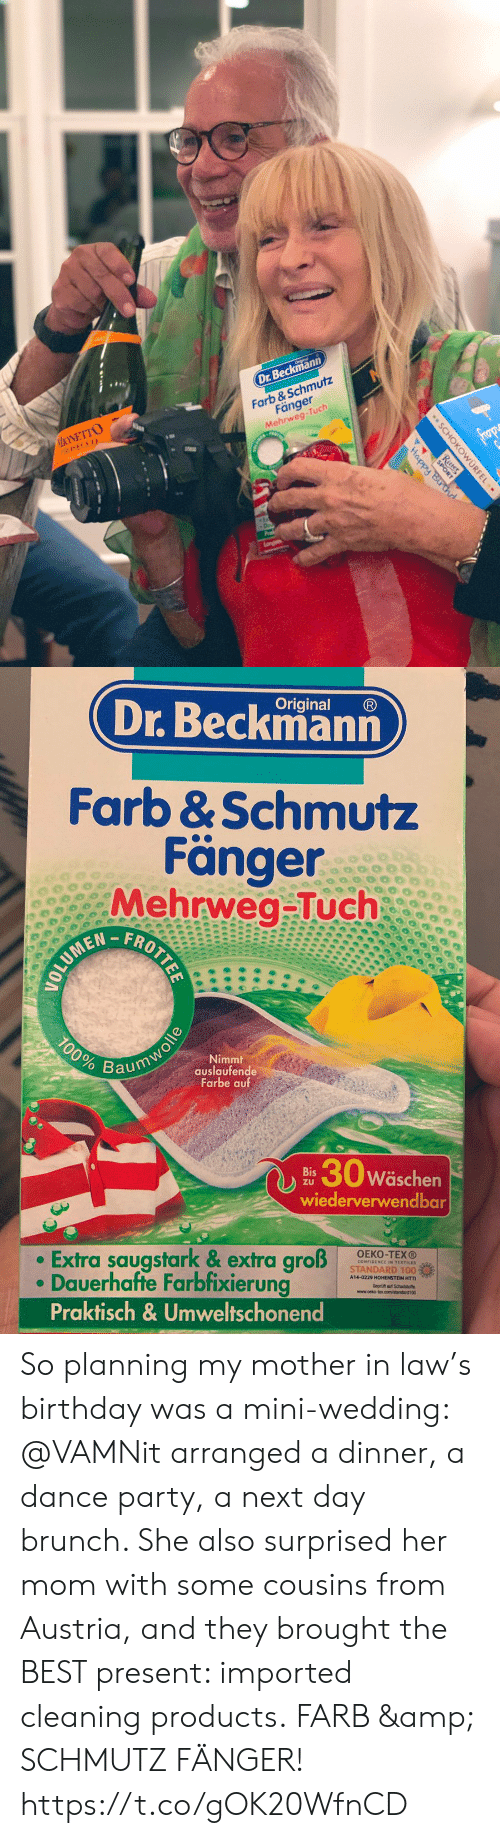 In Law: Dr.Beckmann  MONETTO  PROSECCO  Farb &Schmutz  Fänger  Mehrweg-Tuch  frop  Happy Bir d  Langan  SCHOKOWURFEL  Ritter  SPORT  .   Original  Dr.Beckmann  Farb &Schmutz  Fänger  Mehrweg-Tuch  FROTTEE  100%  Nimmt  auslaufende  Farbe auf  Baumwolle  30w  Wäschen  Bis  ZU  wiederverwendbar  Extra saugstark & extra groß  Dauerhafte Farbfixierung  Praktisch& Umweltschonend  OEKO-TEXO  STANDARD 100%  A14-0229 HOHENSTEIN HTTI So planning my mother in law's birthday was a mini-wedding: @VAMNit arranged a dinner, a dance party, a next day brunch. She also surprised her mom with some cousins from Austria, and they brought the BEST present:  imported cleaning products. FARB & SCHMUTZ FÄNGER! https://t.co/gOK20WfnCD